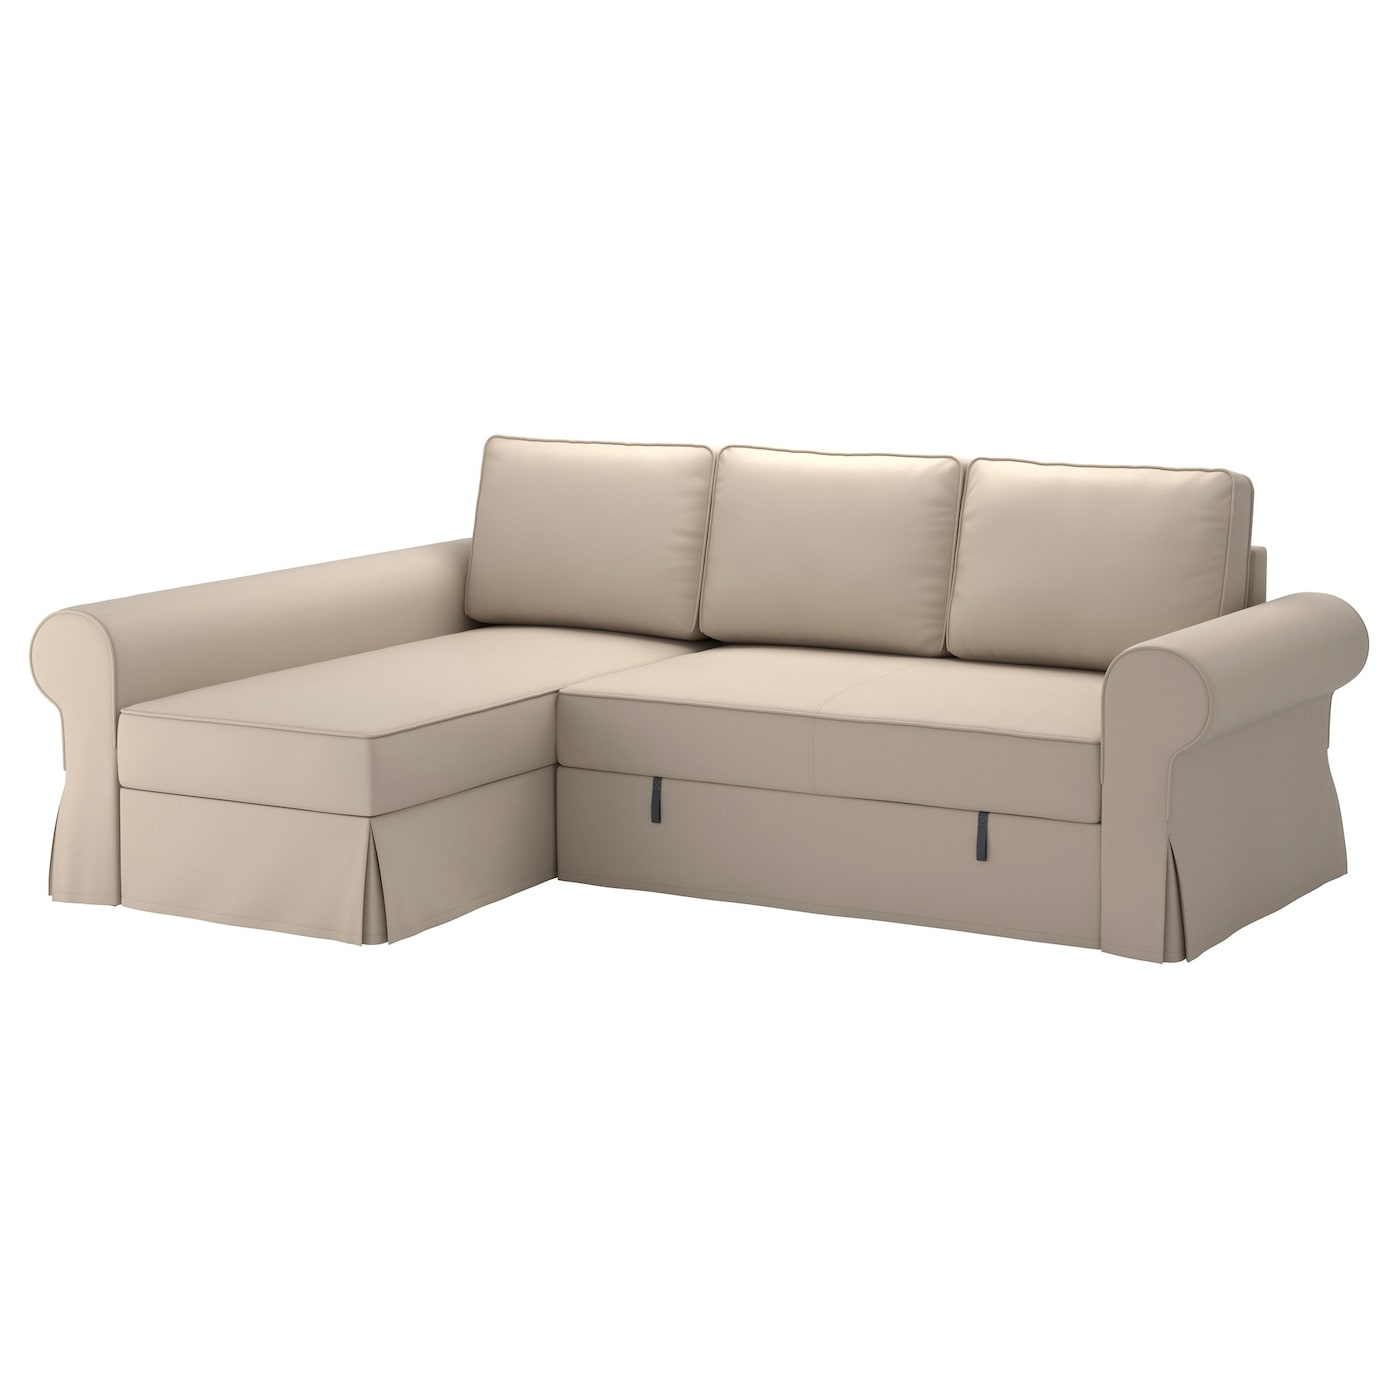 Ikea Sofa Bed With Chaise Ikea Sofa Bed You Thesofa